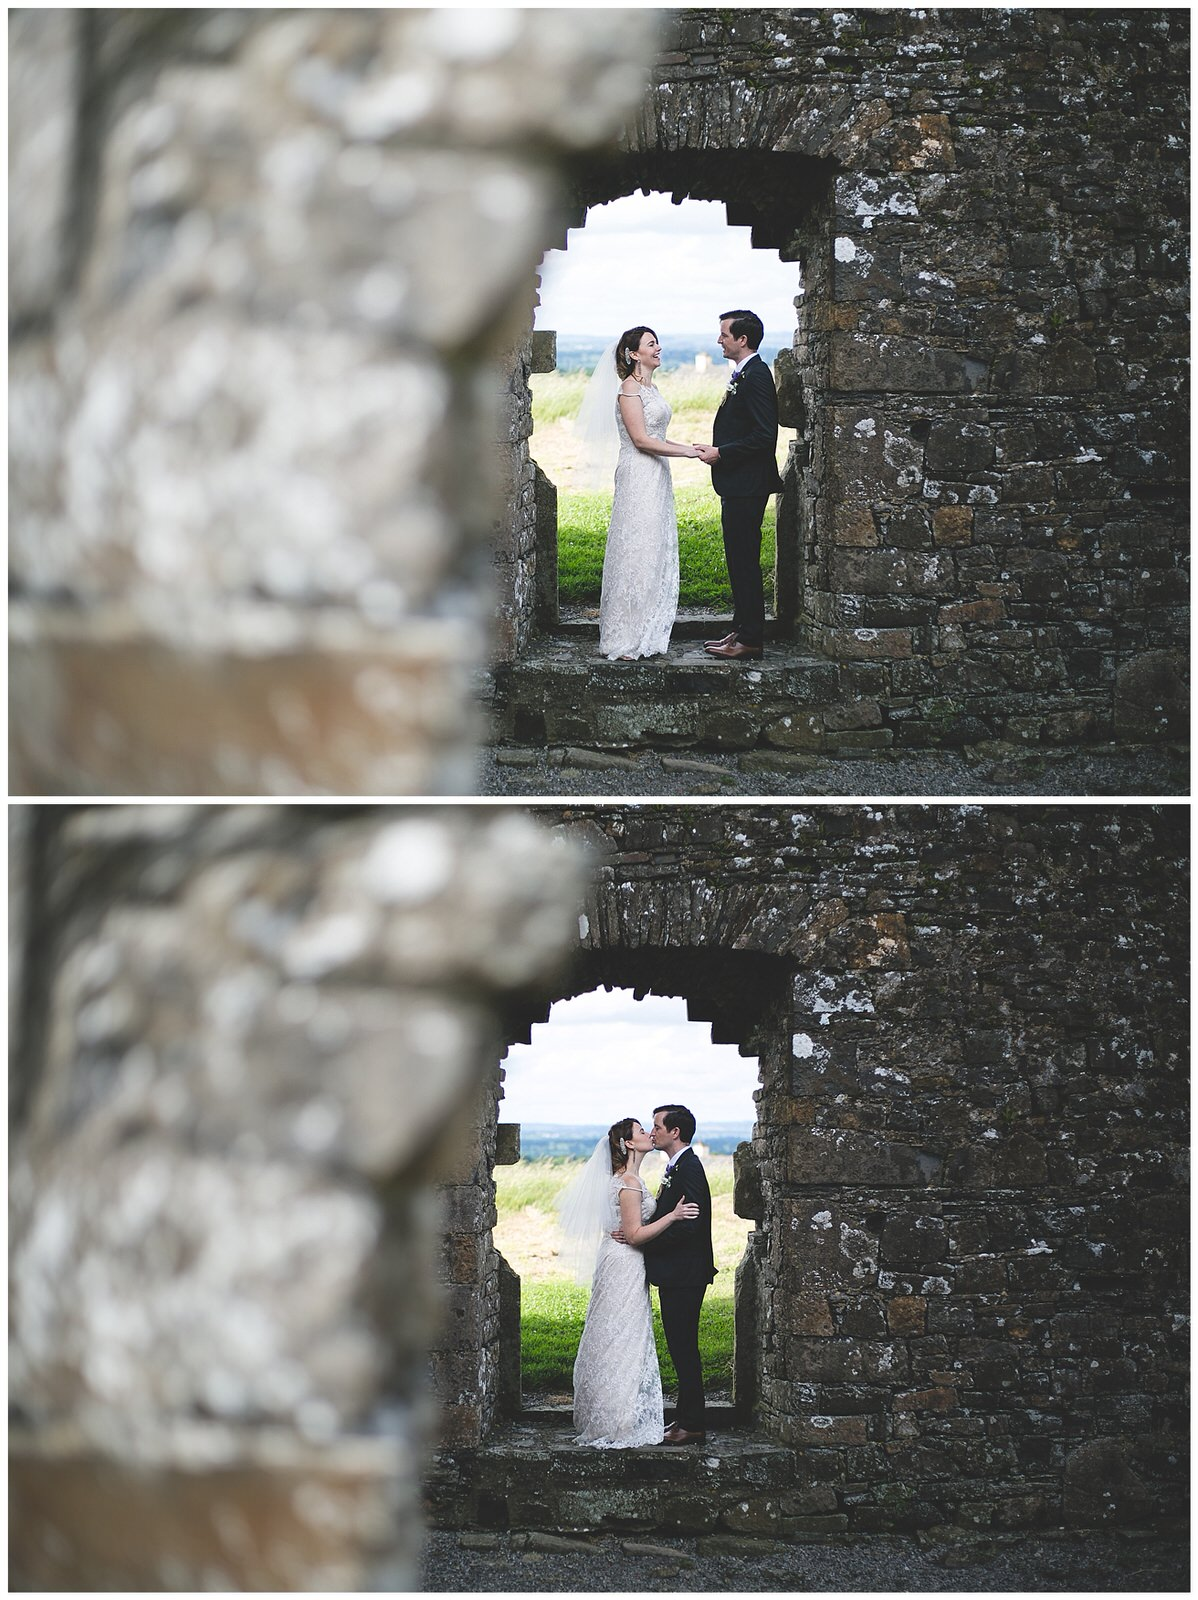 Wild Things Wed wedding photographer based in Dublin